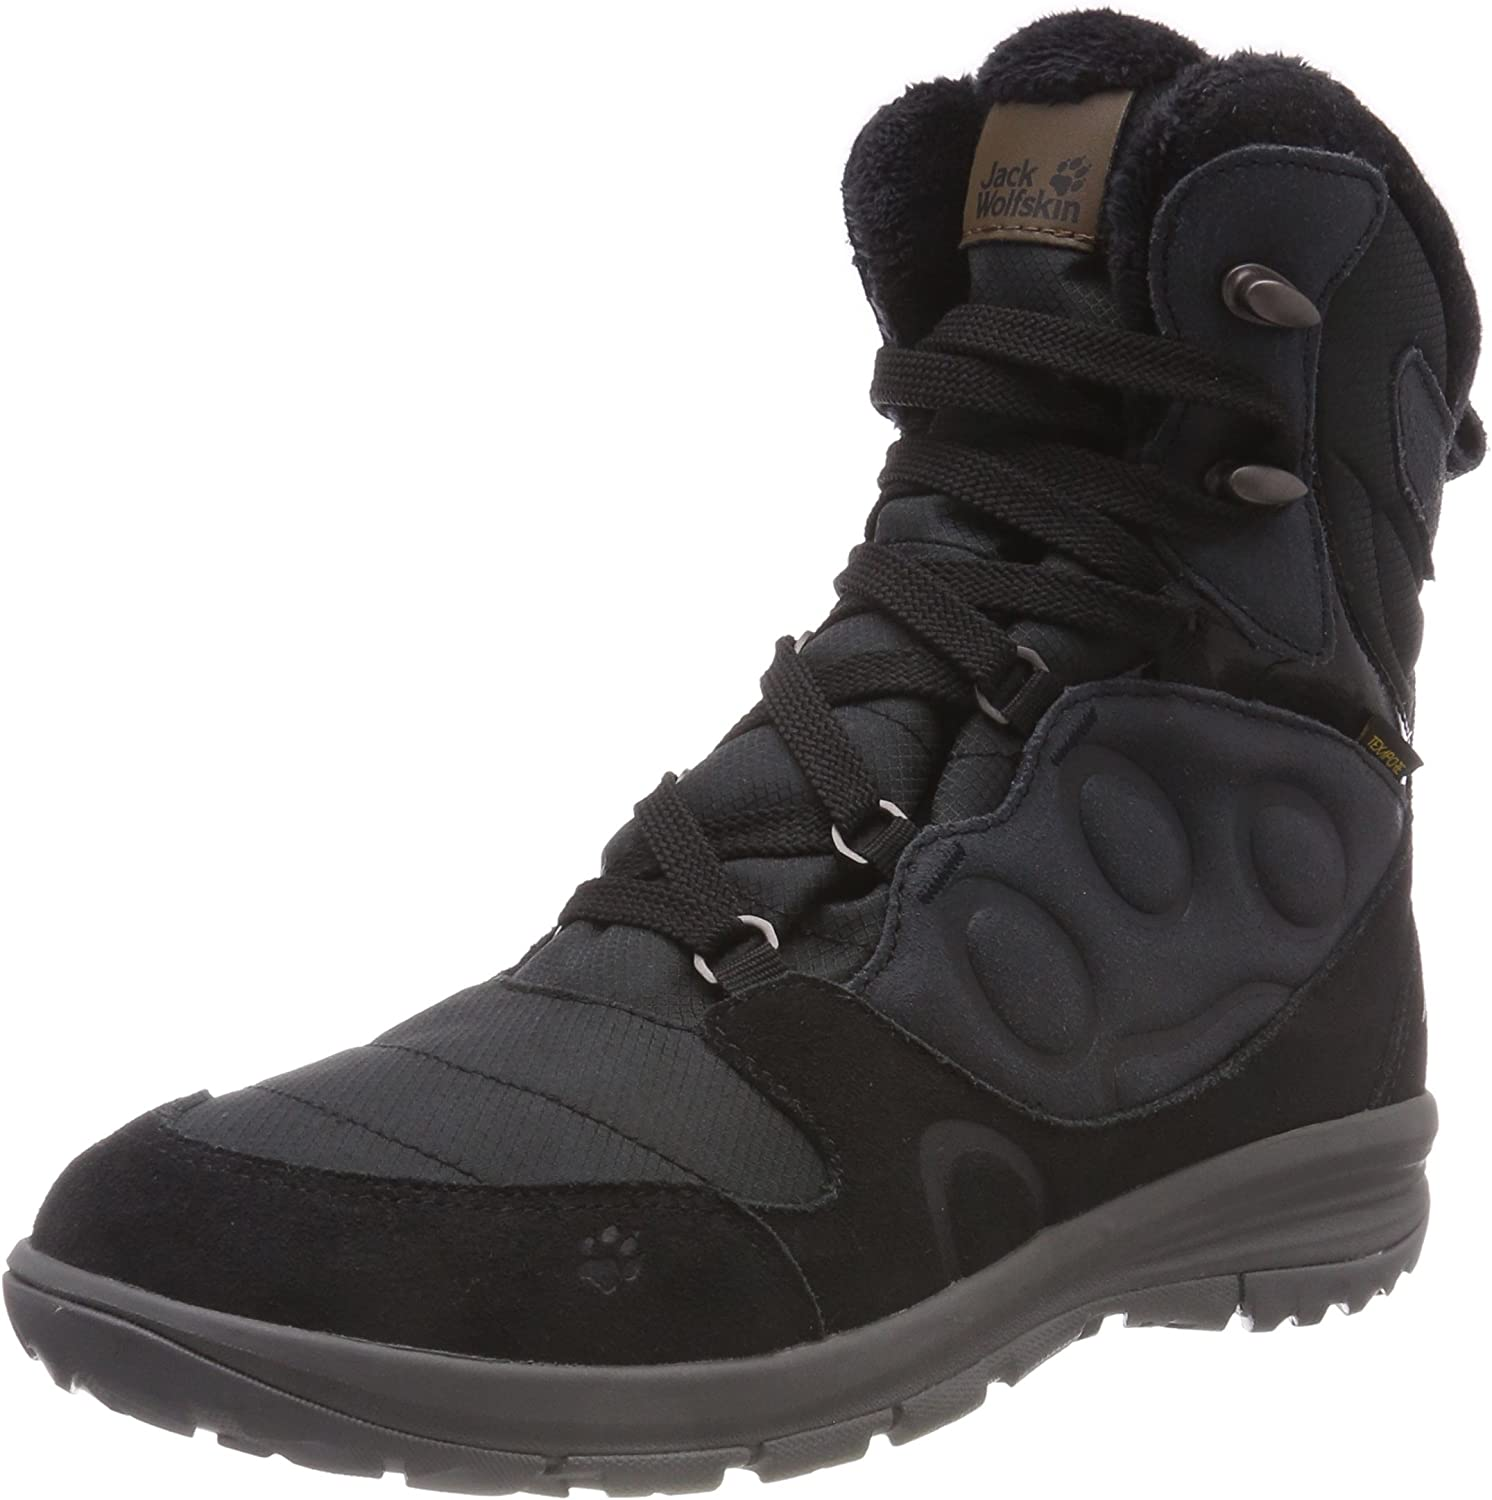 Jack Wolfskin Vancouver Texapore High W Women's Waterproof -4°f Insulated Casual Winter Boot Snow